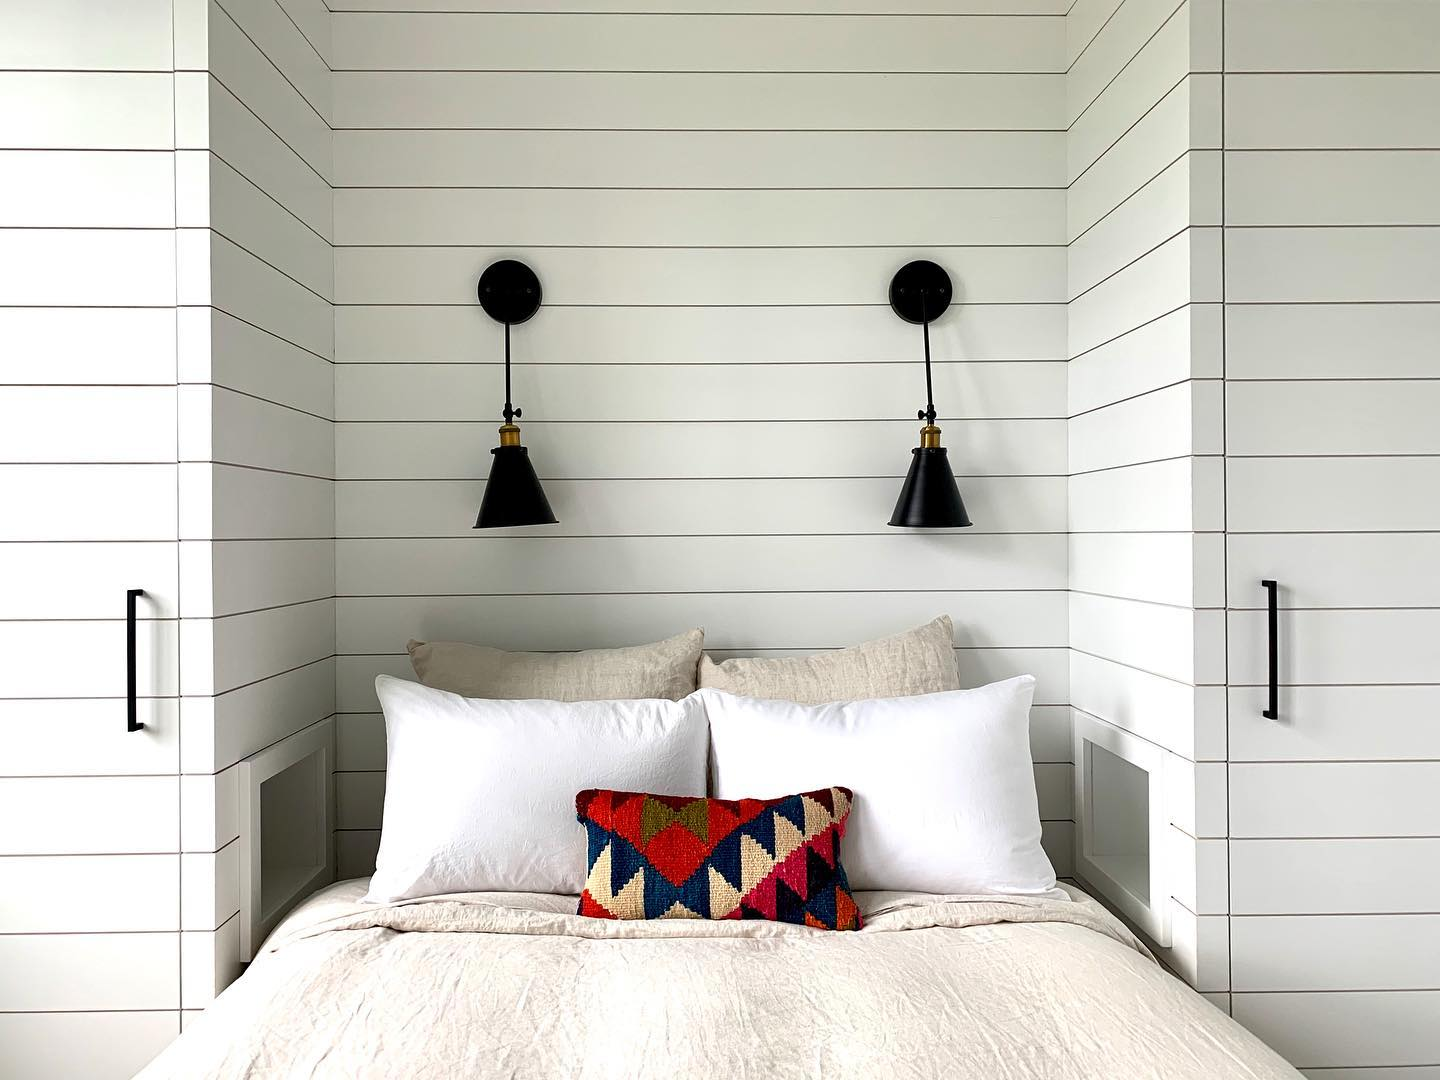 Shiplap, cubby books for your iPhone and water, reading light, built in his and hers closet...what more do you need?!? whitefish custom home builder